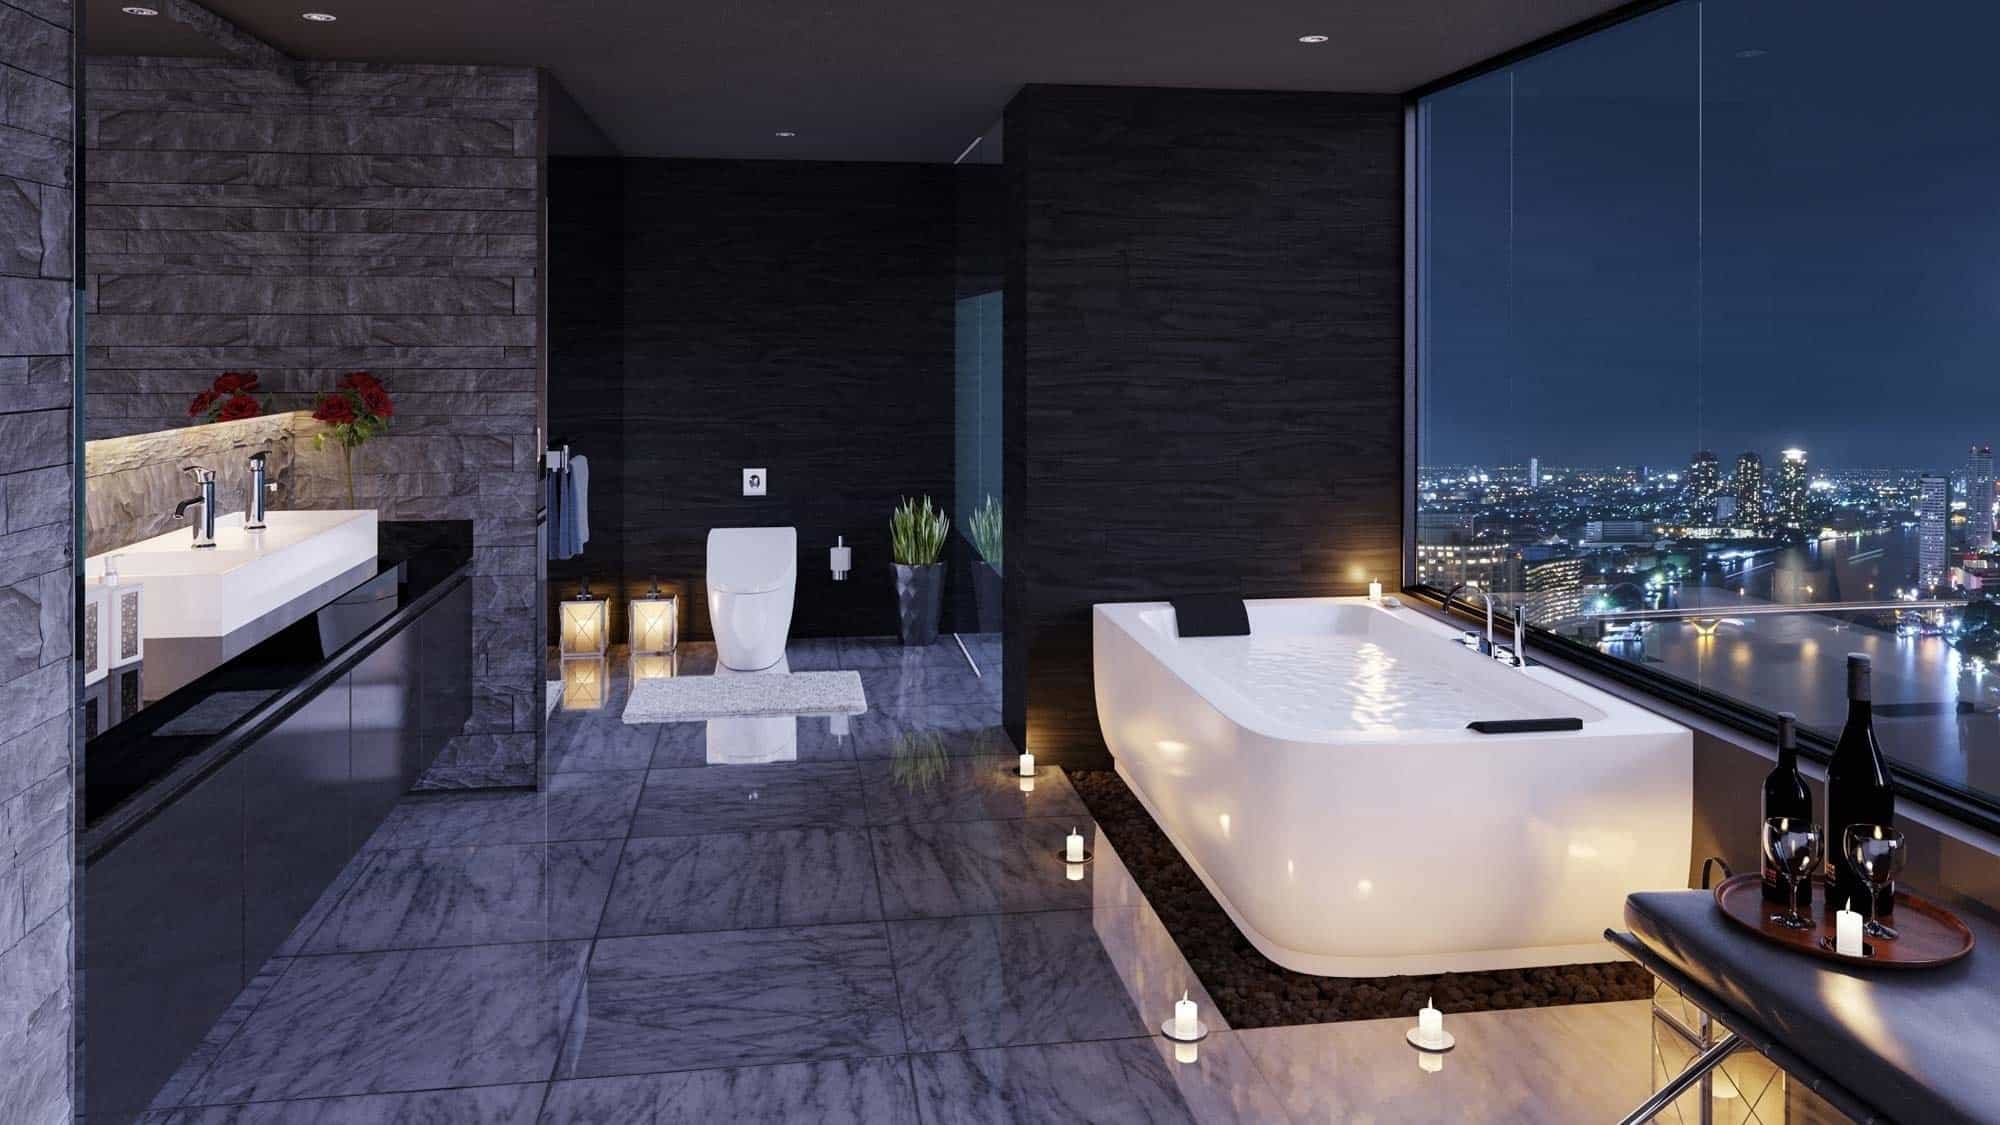 Superb View In Gallery Sleek Bathroom With City Views And Floor Candles